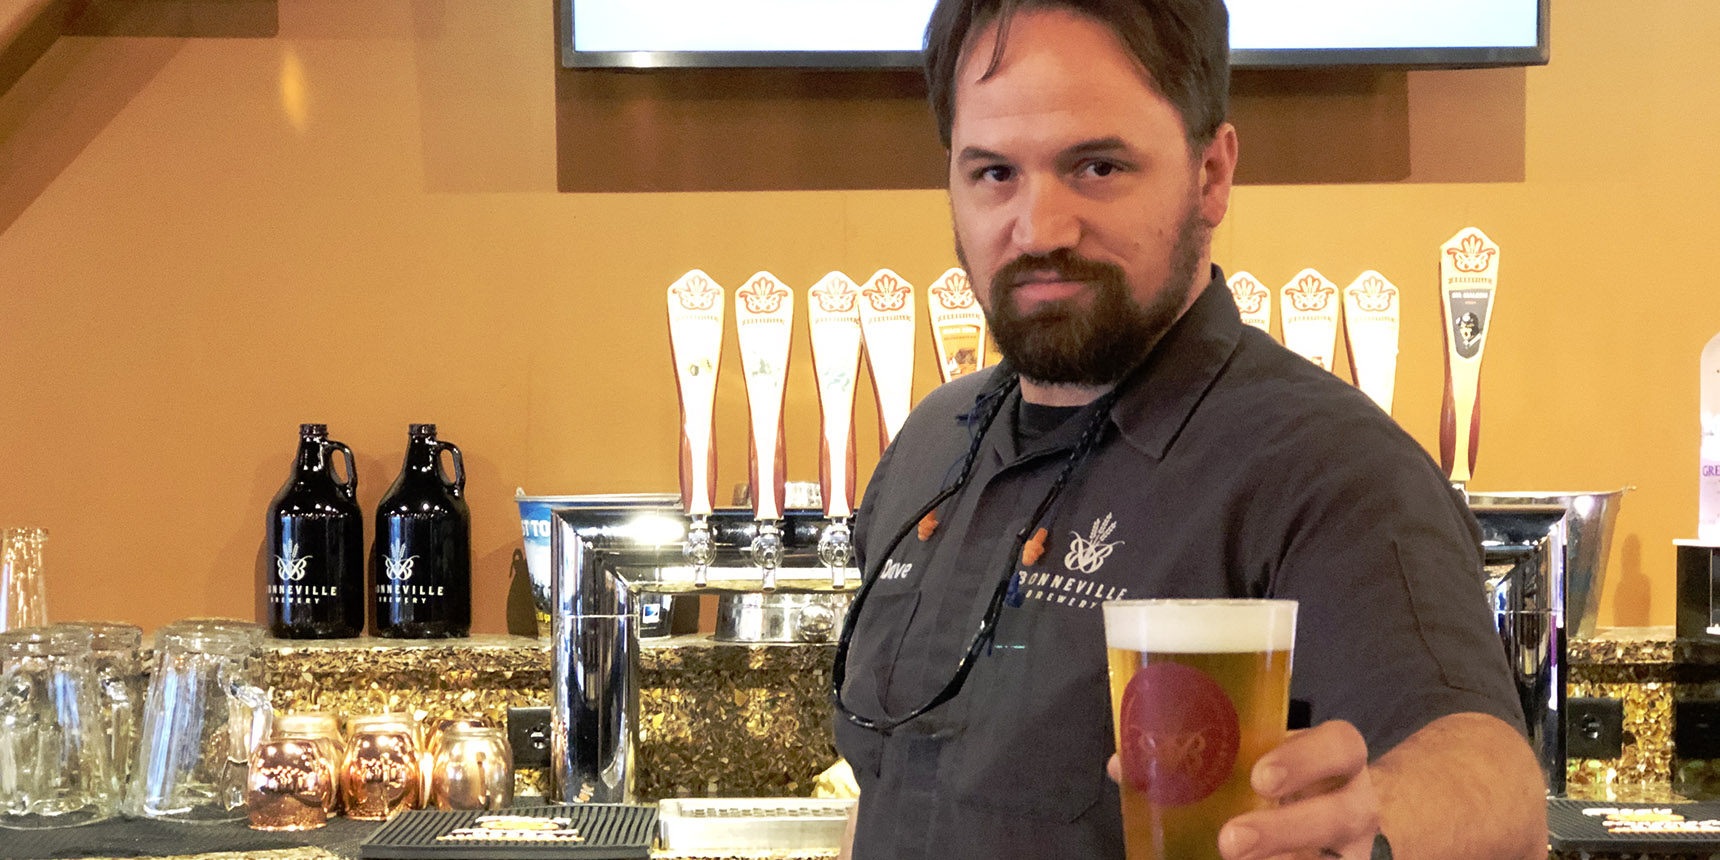 Dave Watson, head brewer at Bonneville Brewery in Tooele, Utah. Photo Credit: Tim Haran